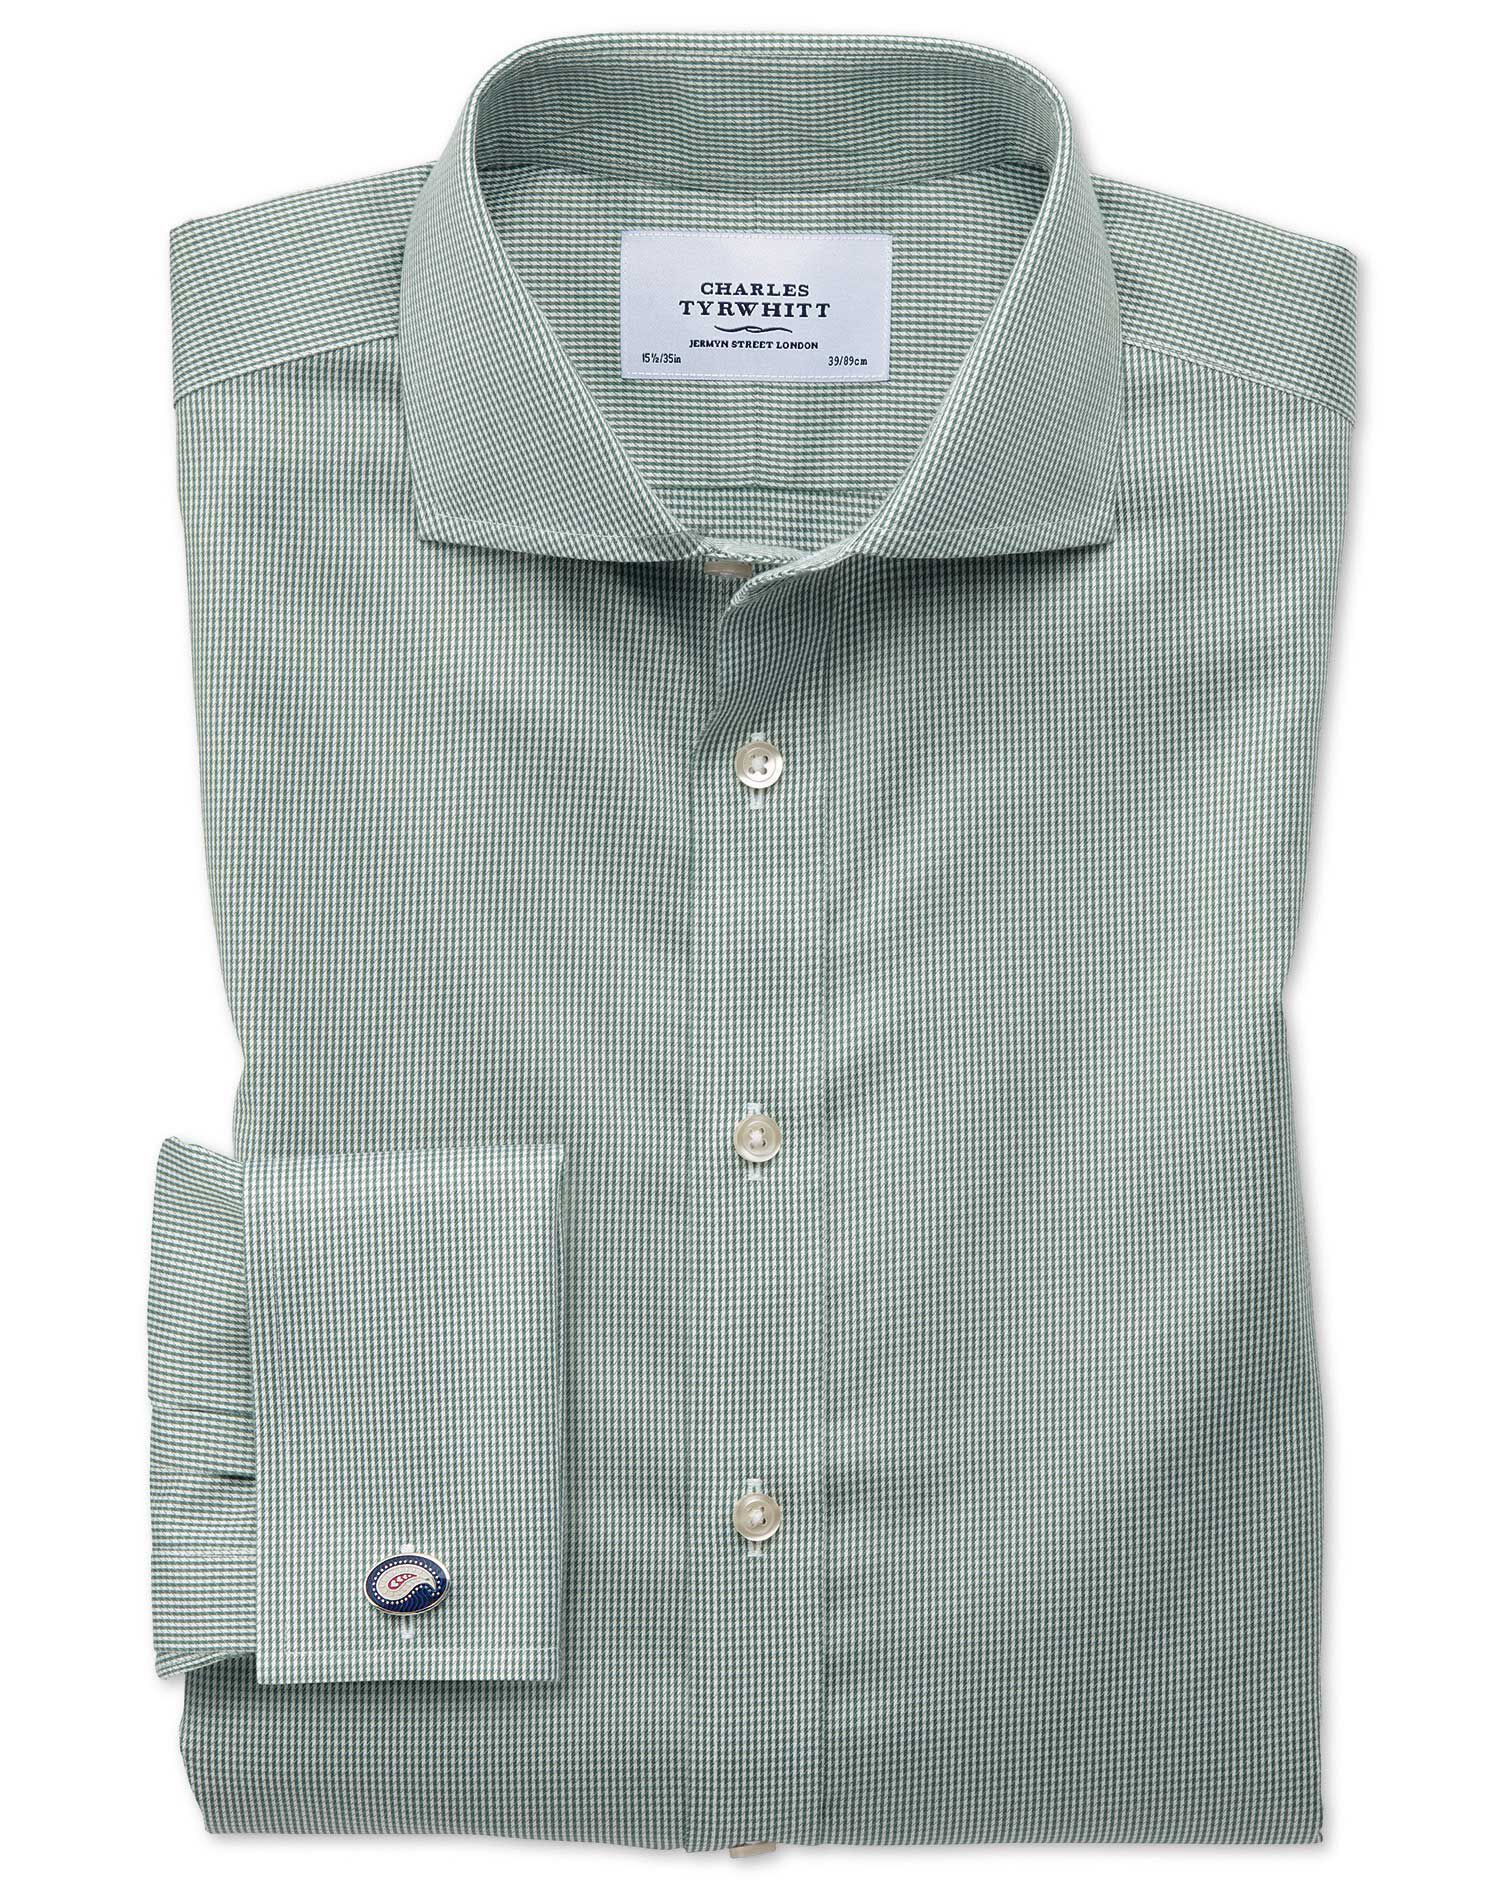 Extra Slim Fit Cutaway Non-Iron Puppytooth Olive Cotton Formal Shirt Single Cuff Size 15/32 by Charl